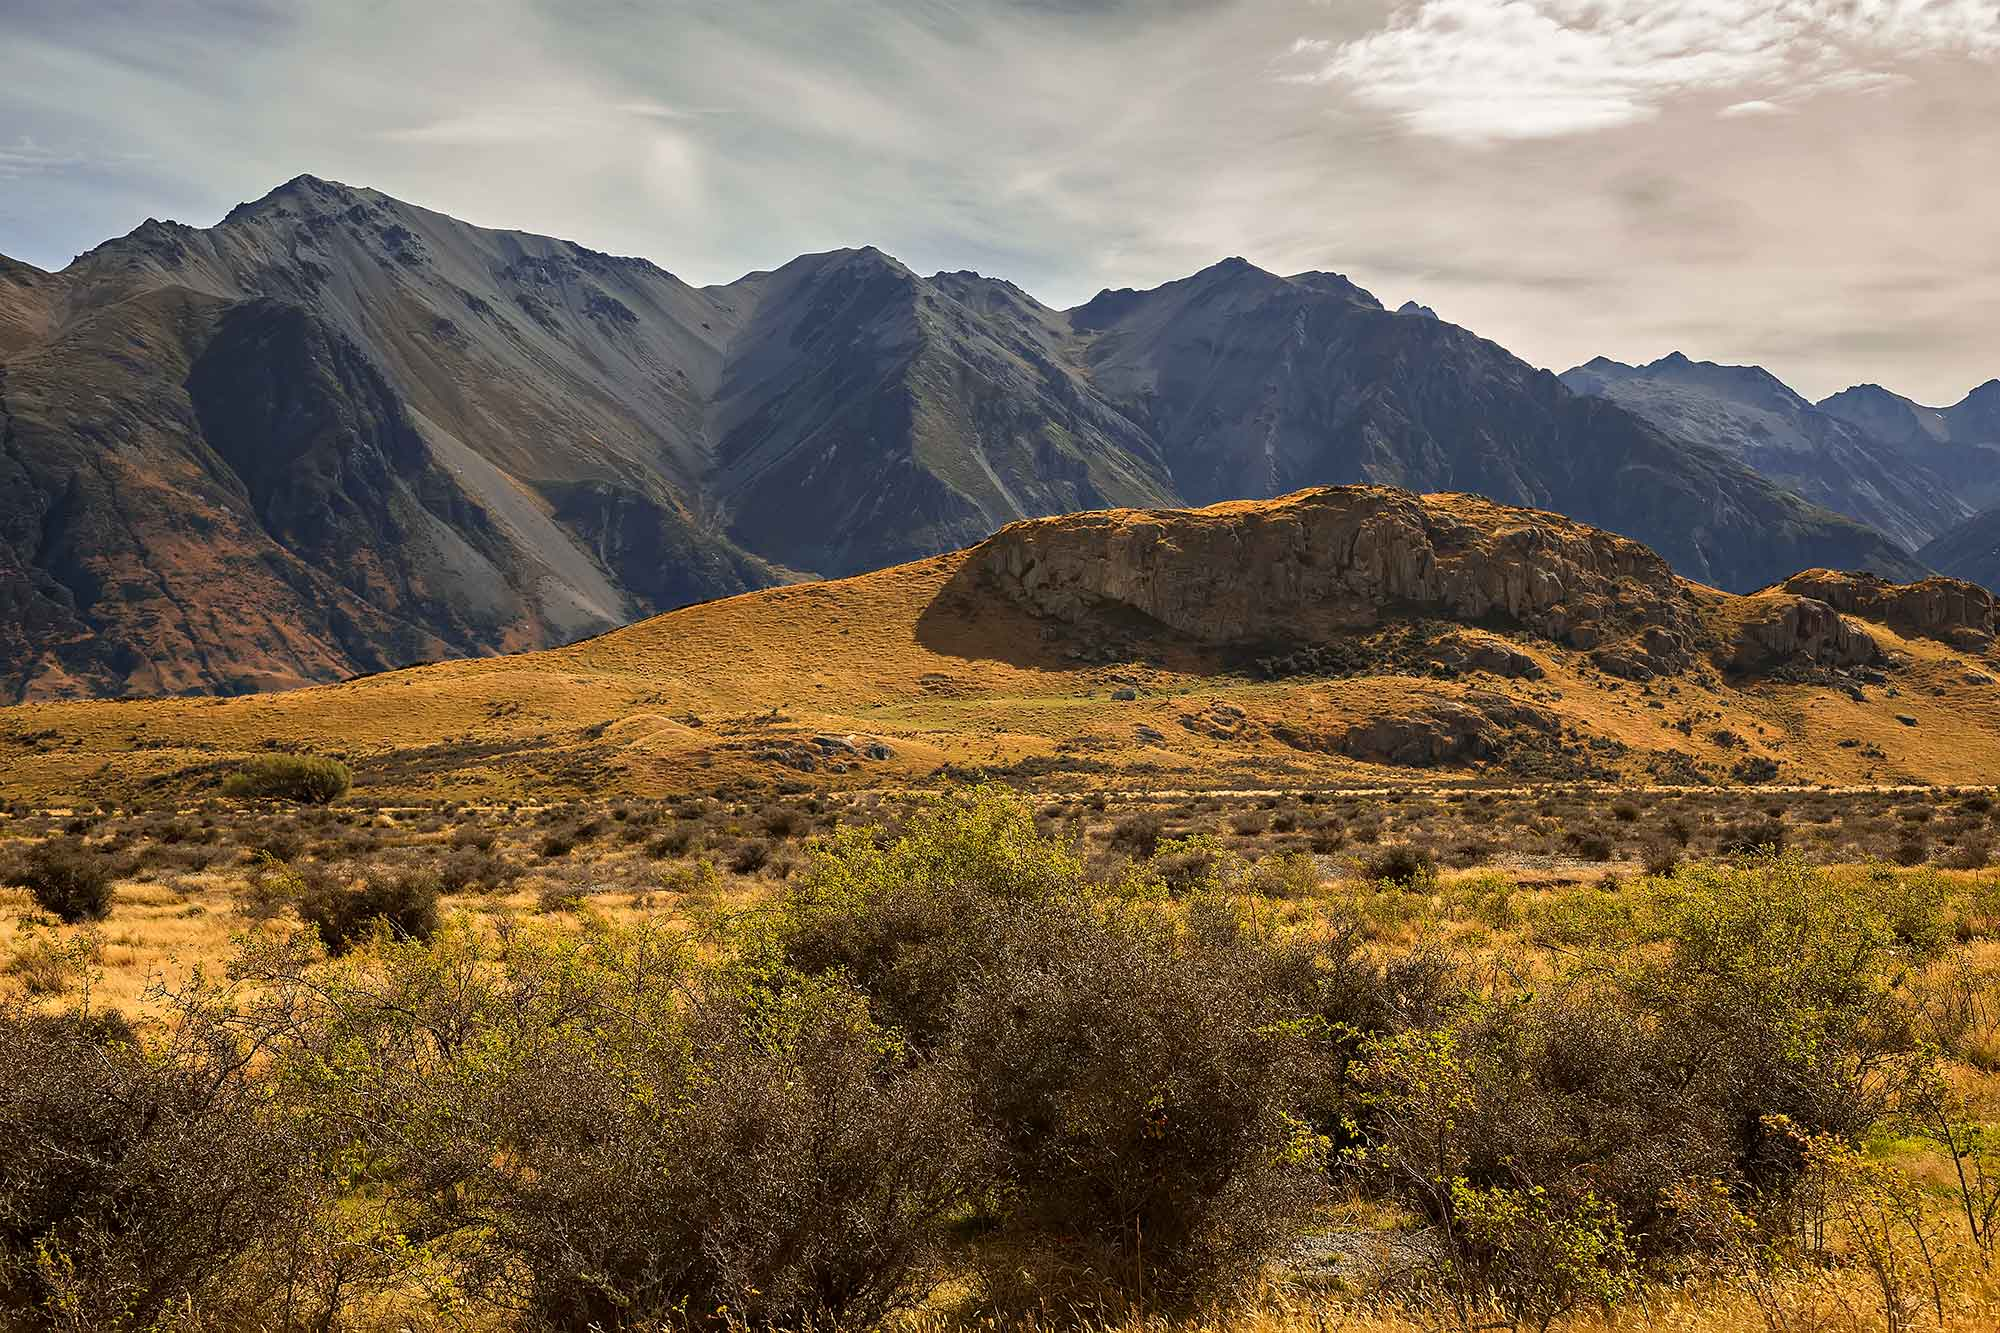 Mount Sunday, Rangitata Valley, New Zealand. © Ulli Maier & Nisa Maier